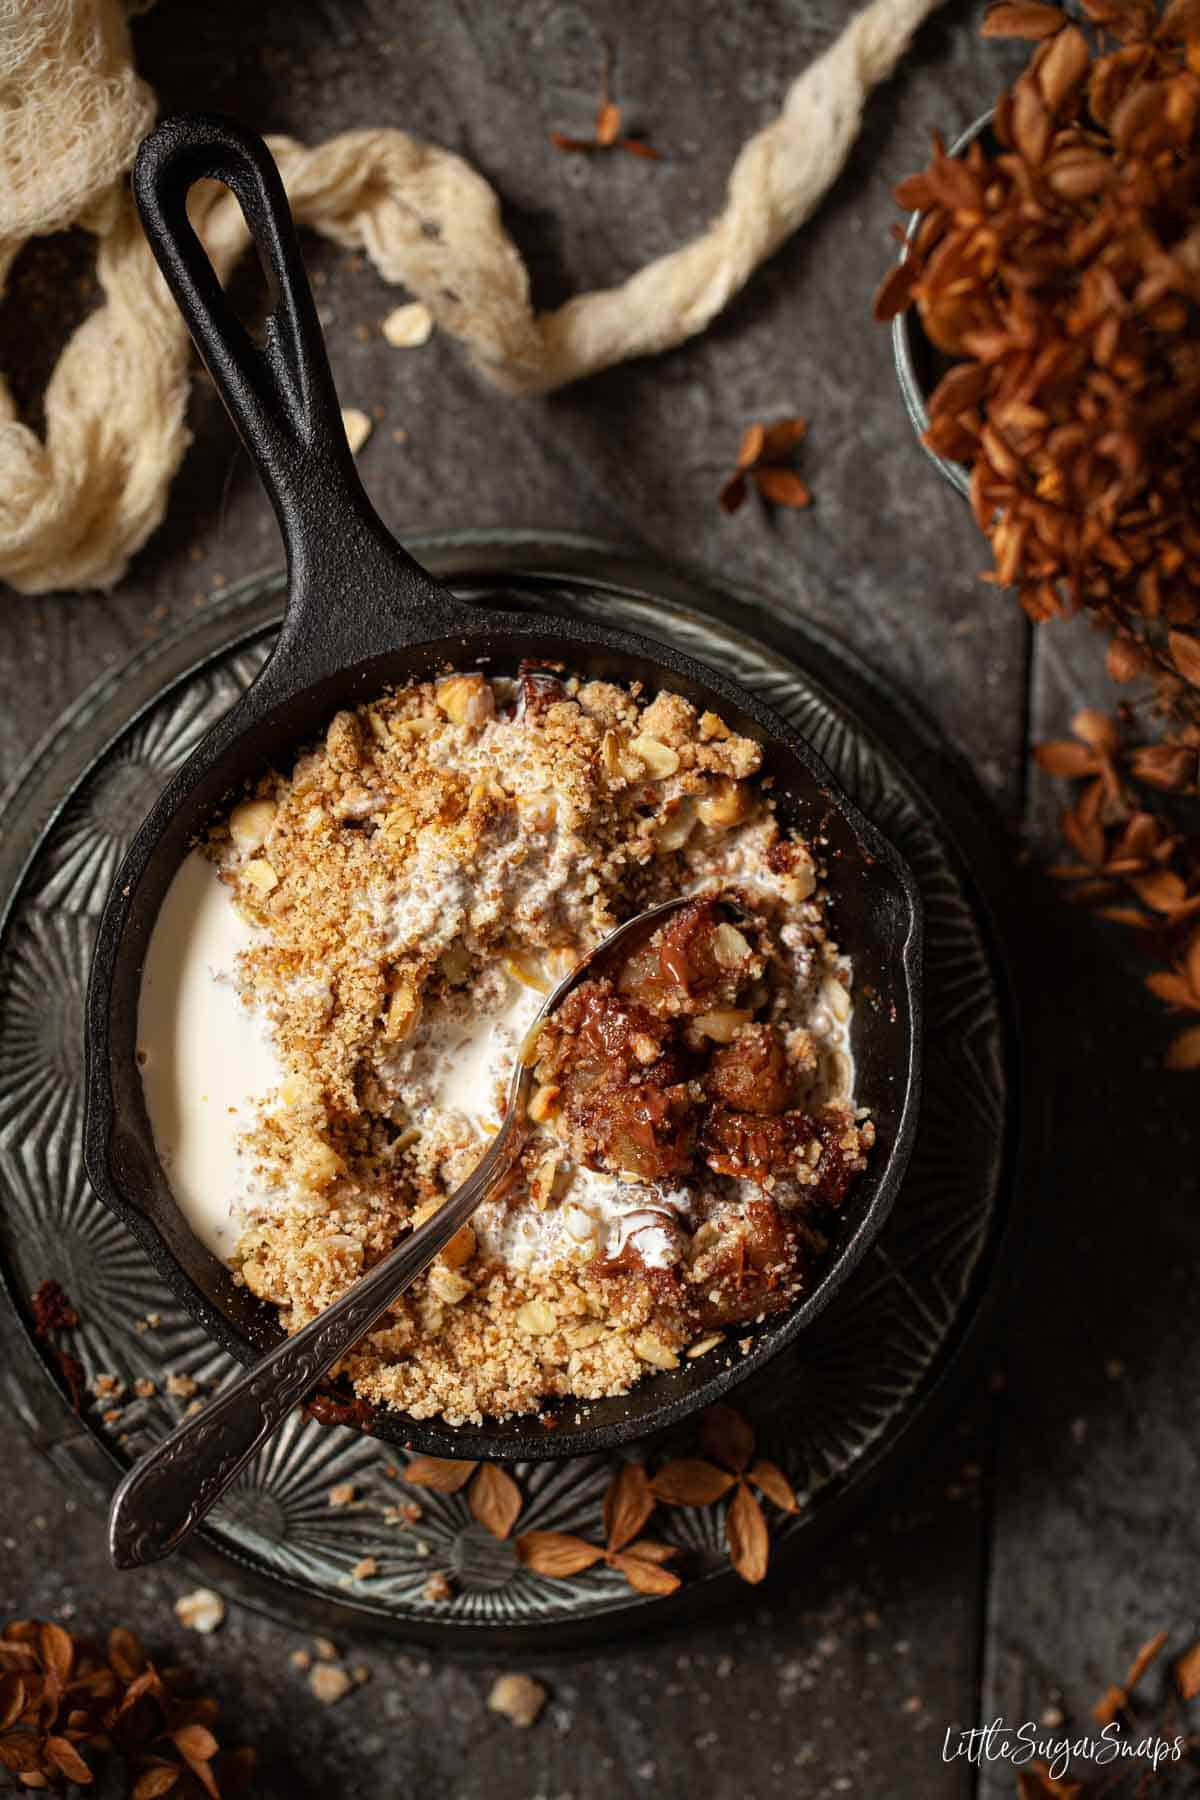 A single serve skillet of chocolate and pear crumble with pouring cream